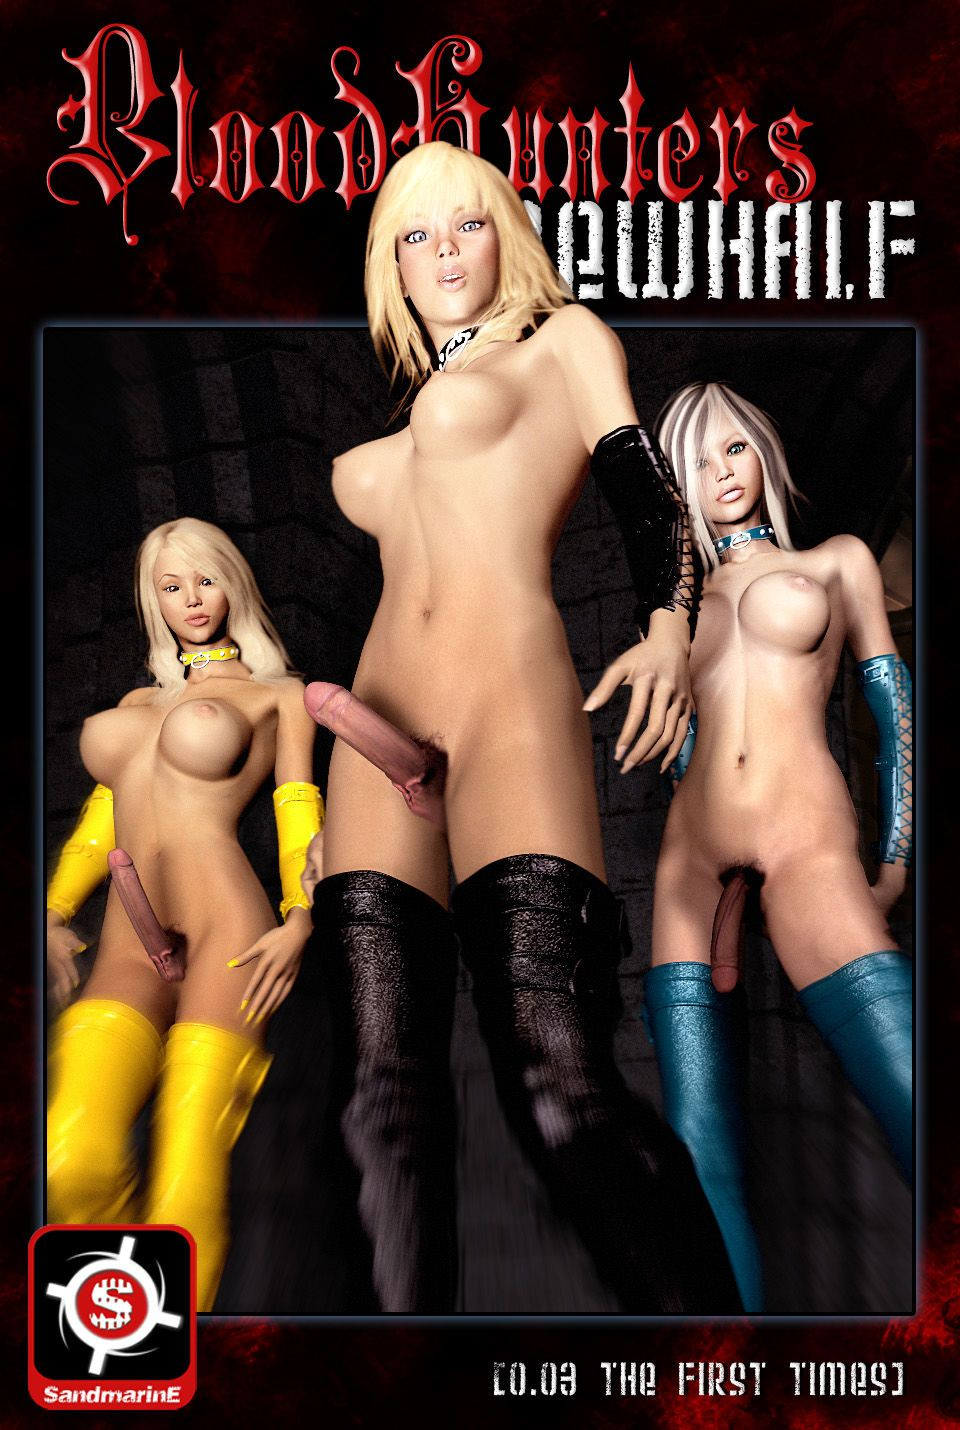 Bloodhunters Newhalf - 003 The first times (futa 3d)